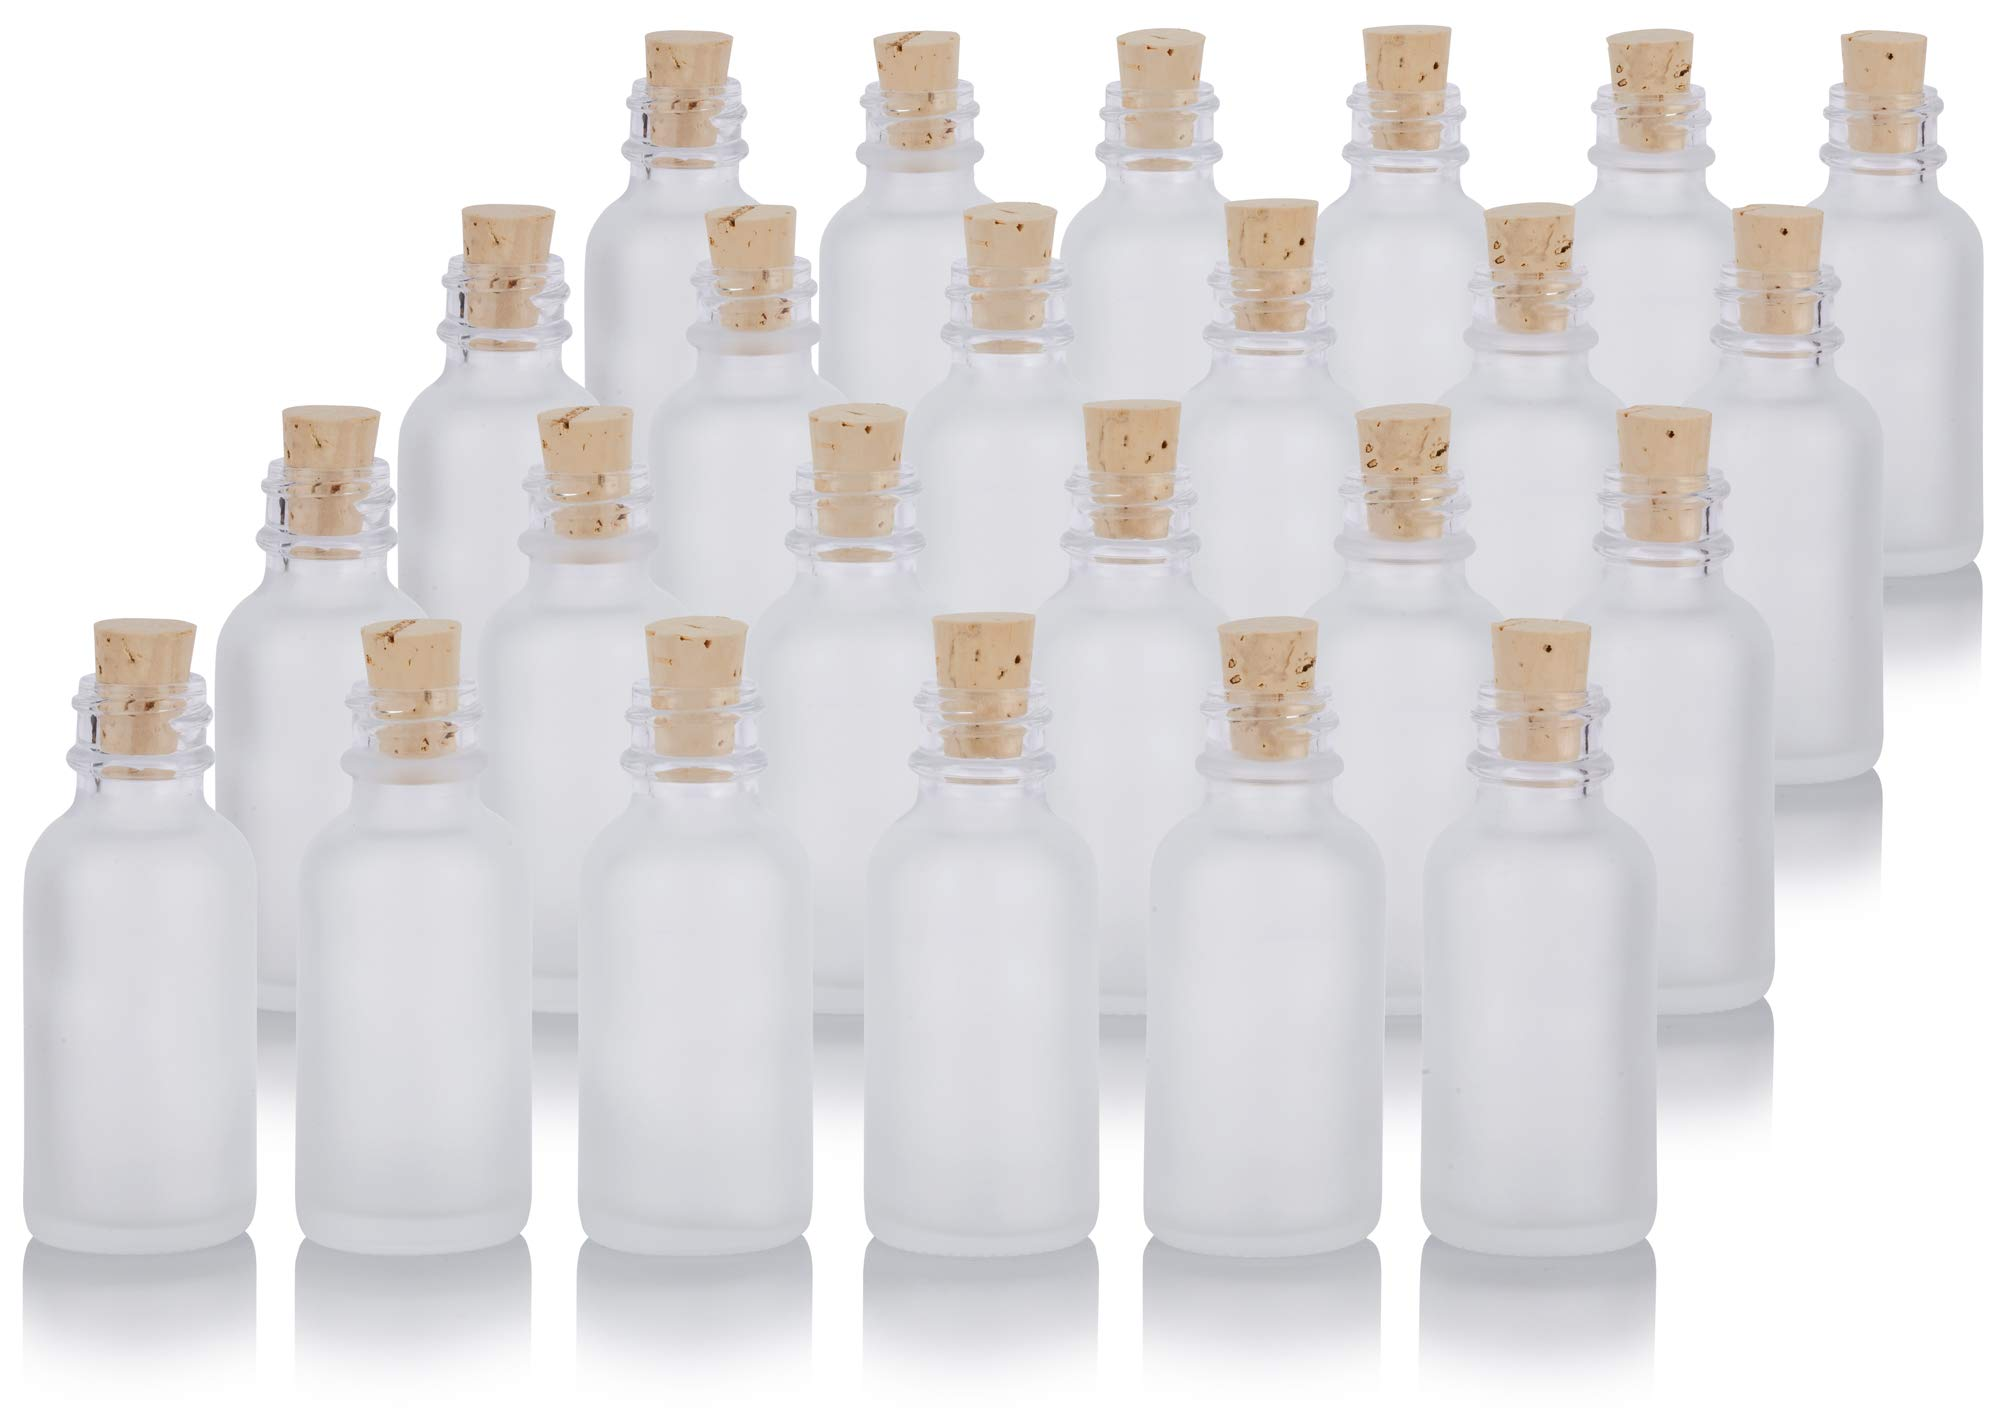 1 oz Frosted Clear Glass Boston Round Cork Stopper Bottle (24 pack) + Funnel and Labels for cosmetics, serums, essential oils, aromatherapy, food grade, bpa free